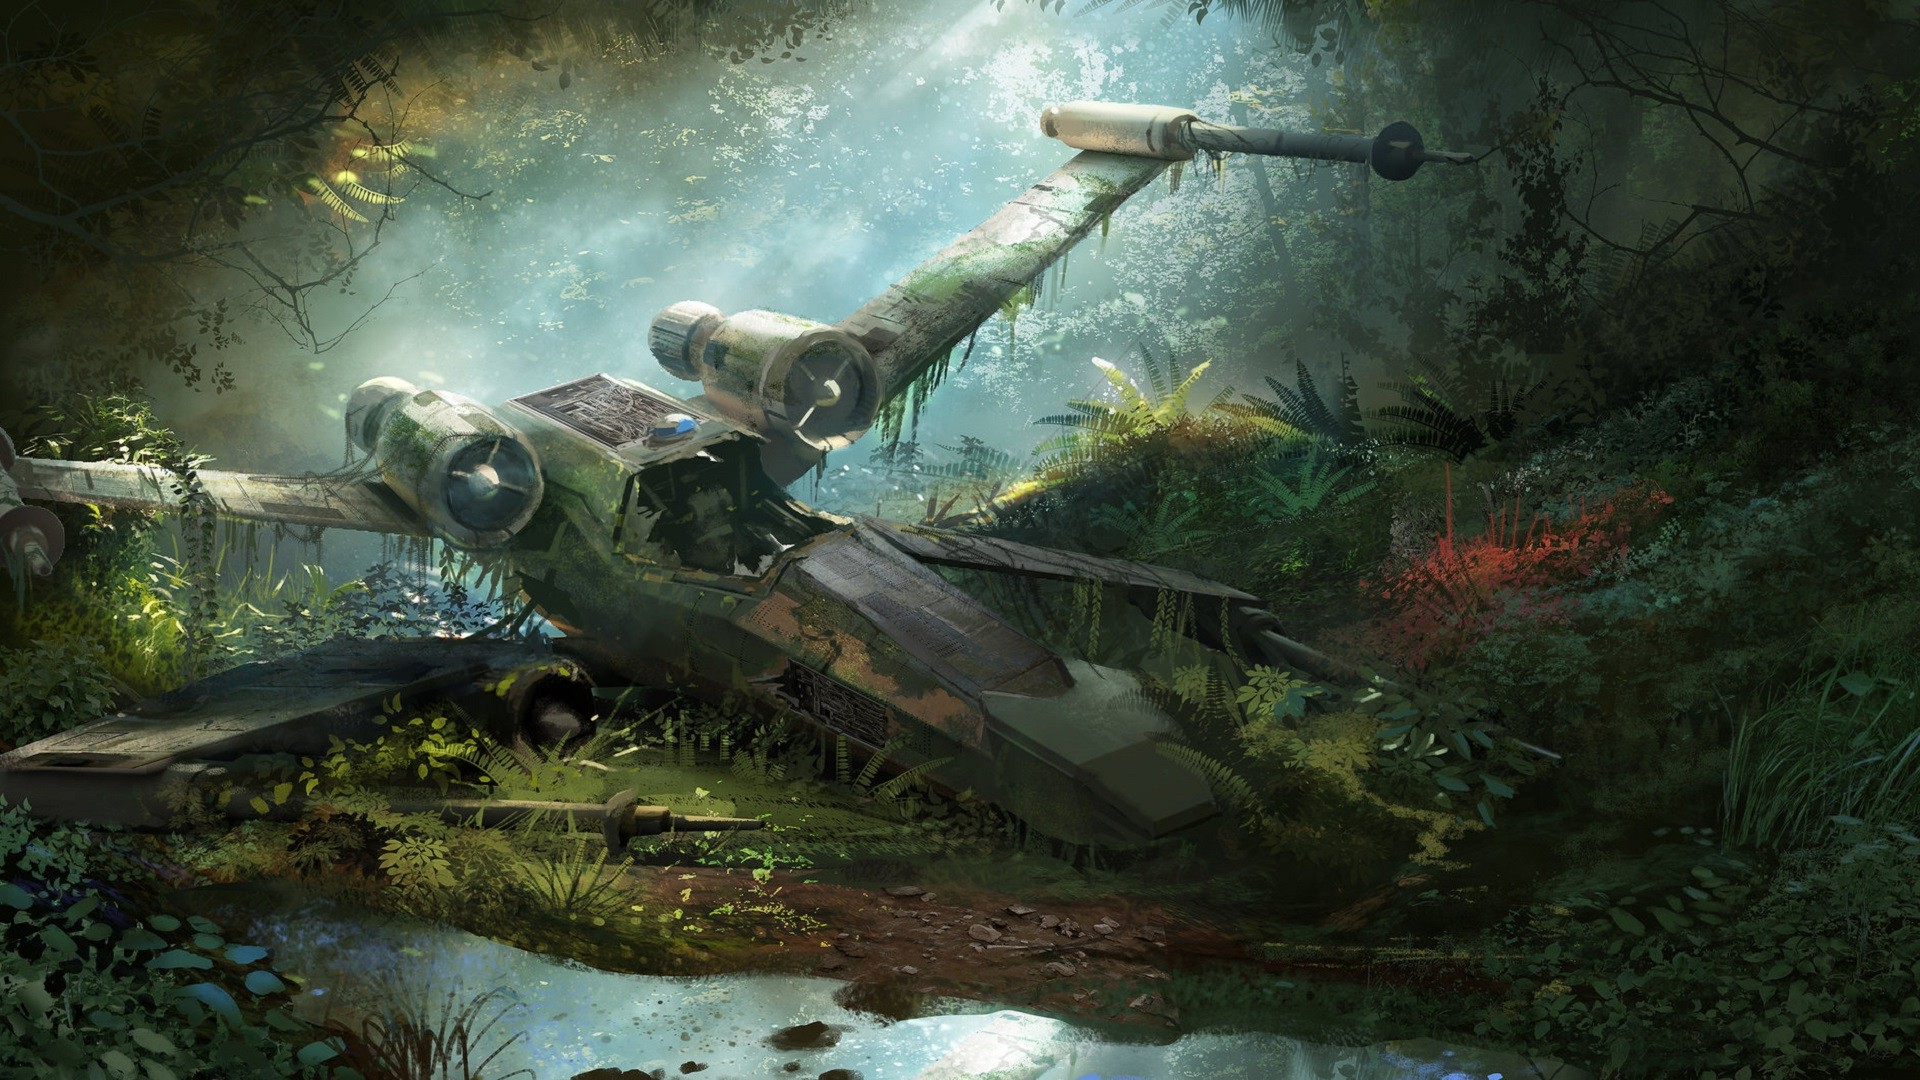 X Wing Fighter Iphone Wallpaper X Wing Wallpaper 45 Wallpapers Adorable Wallpapers